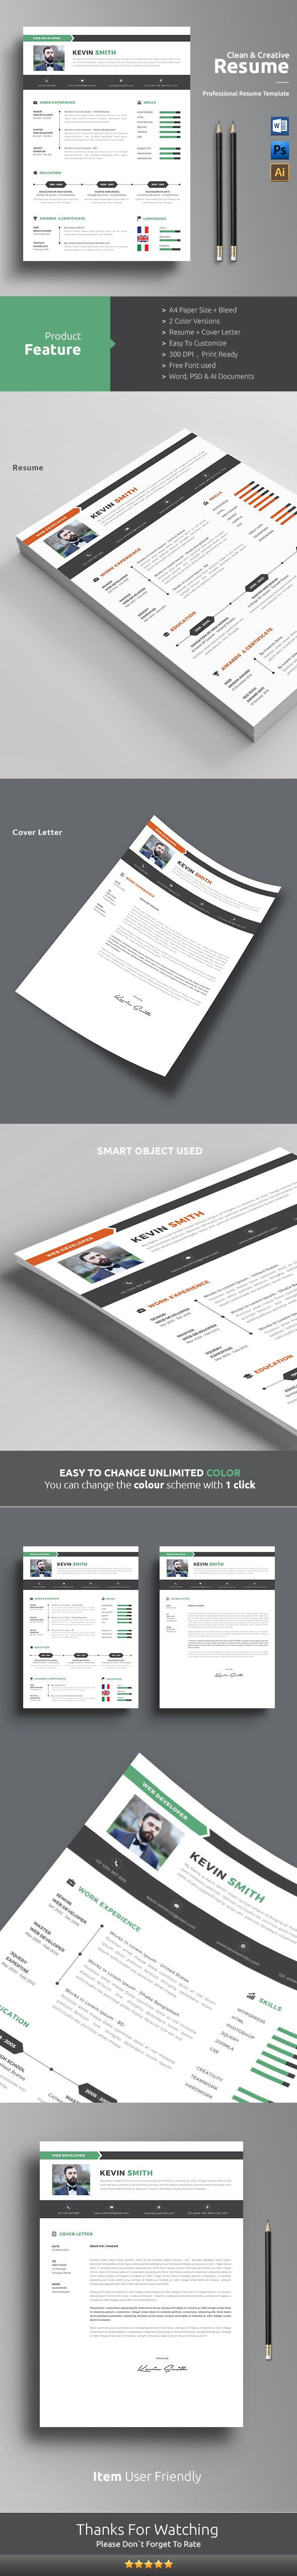 17 best images about design resumes simple great resume layout that is well formatted and clean for more resume design inspirations click